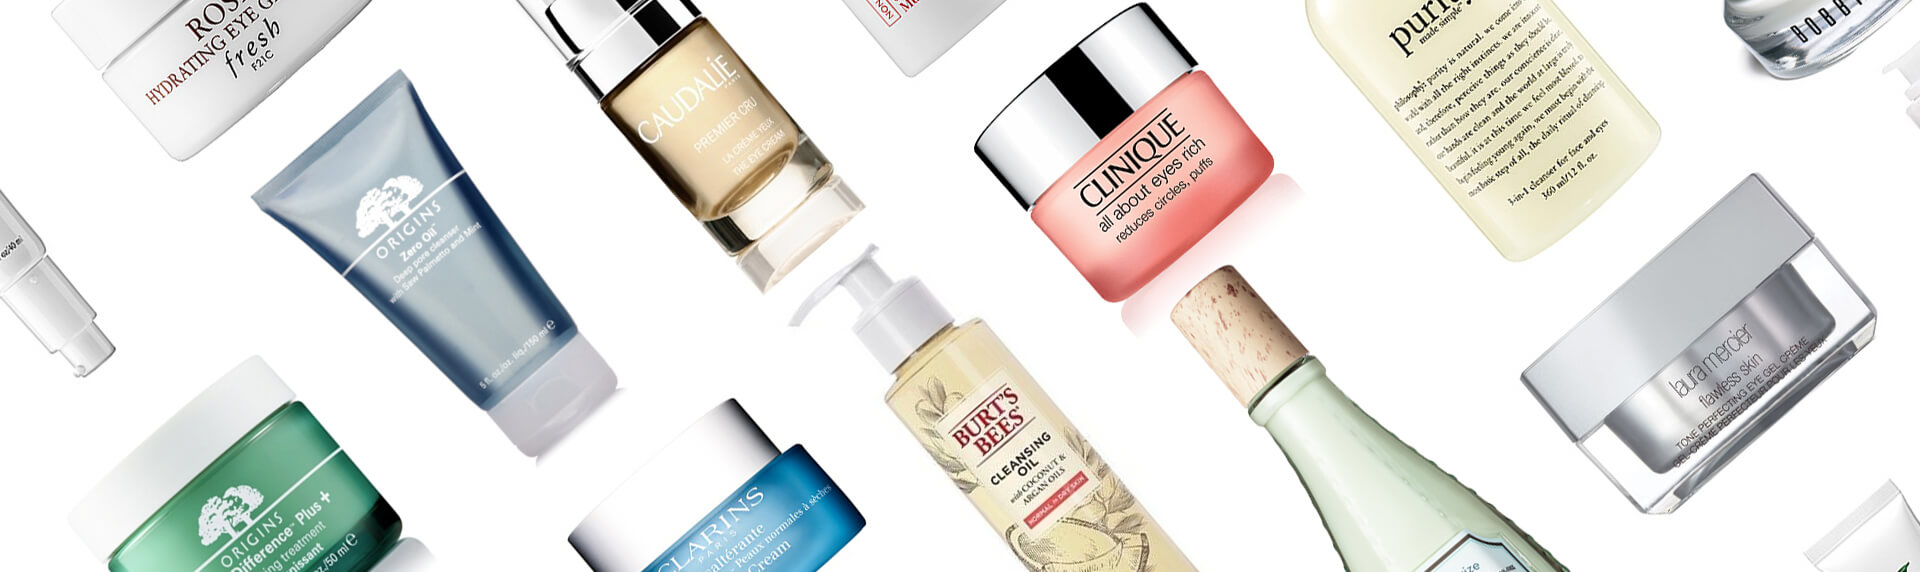 skincare recommendations